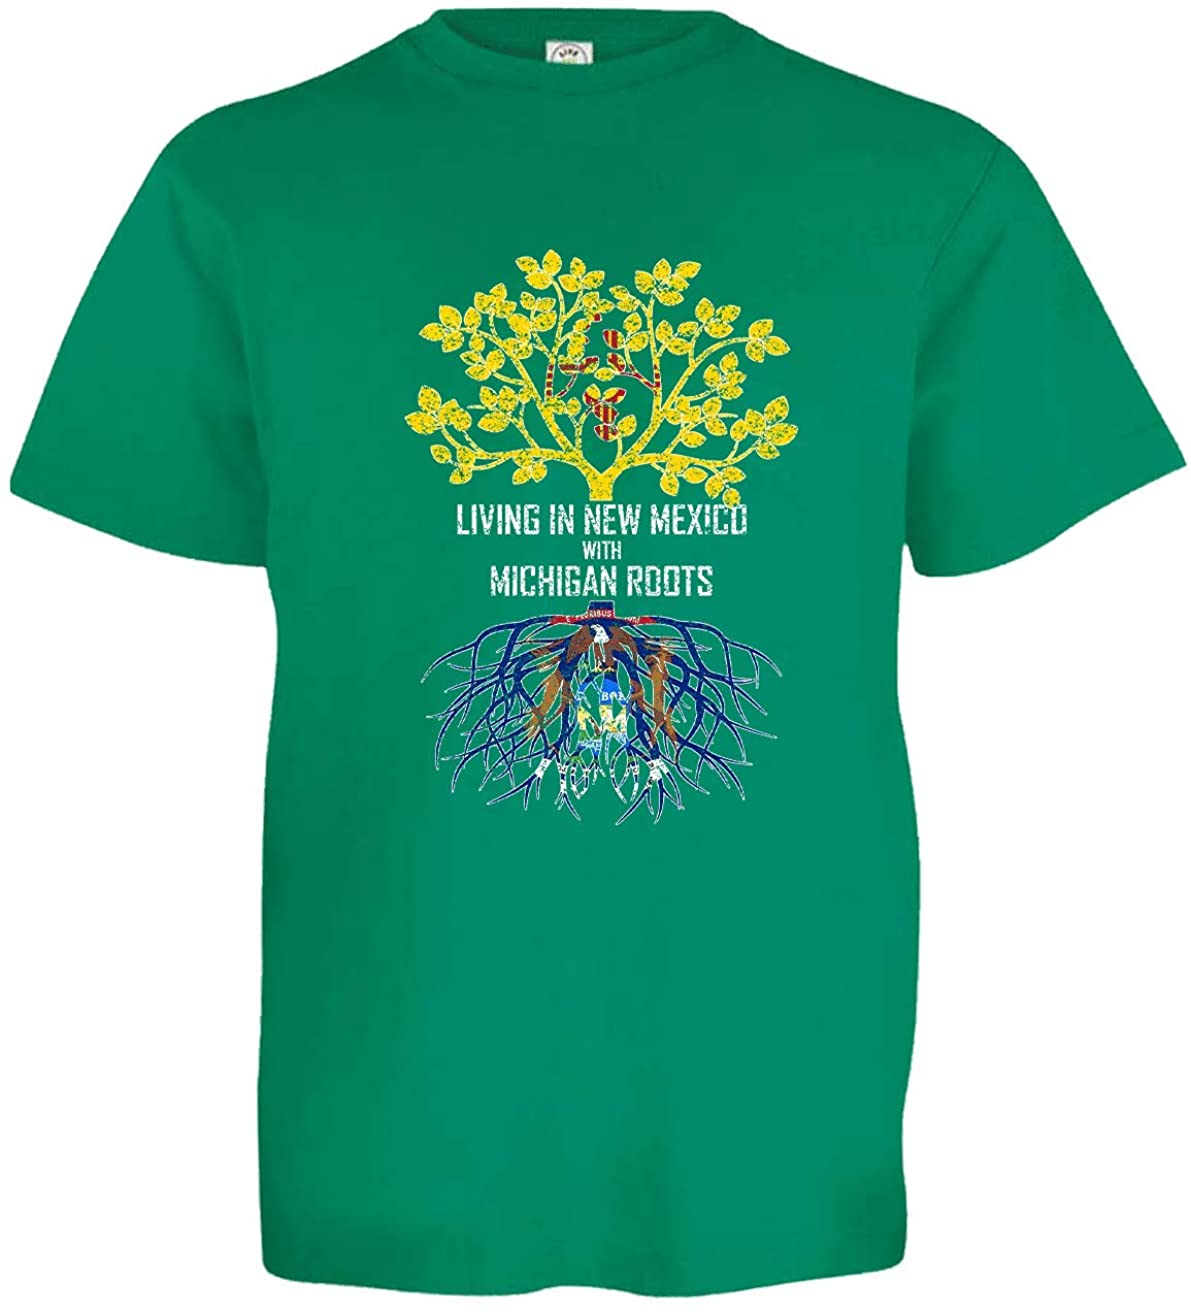 HARD EDGE DESIGN Girl's Youth Living in New Mexico with Michigan Roots T-Shirt